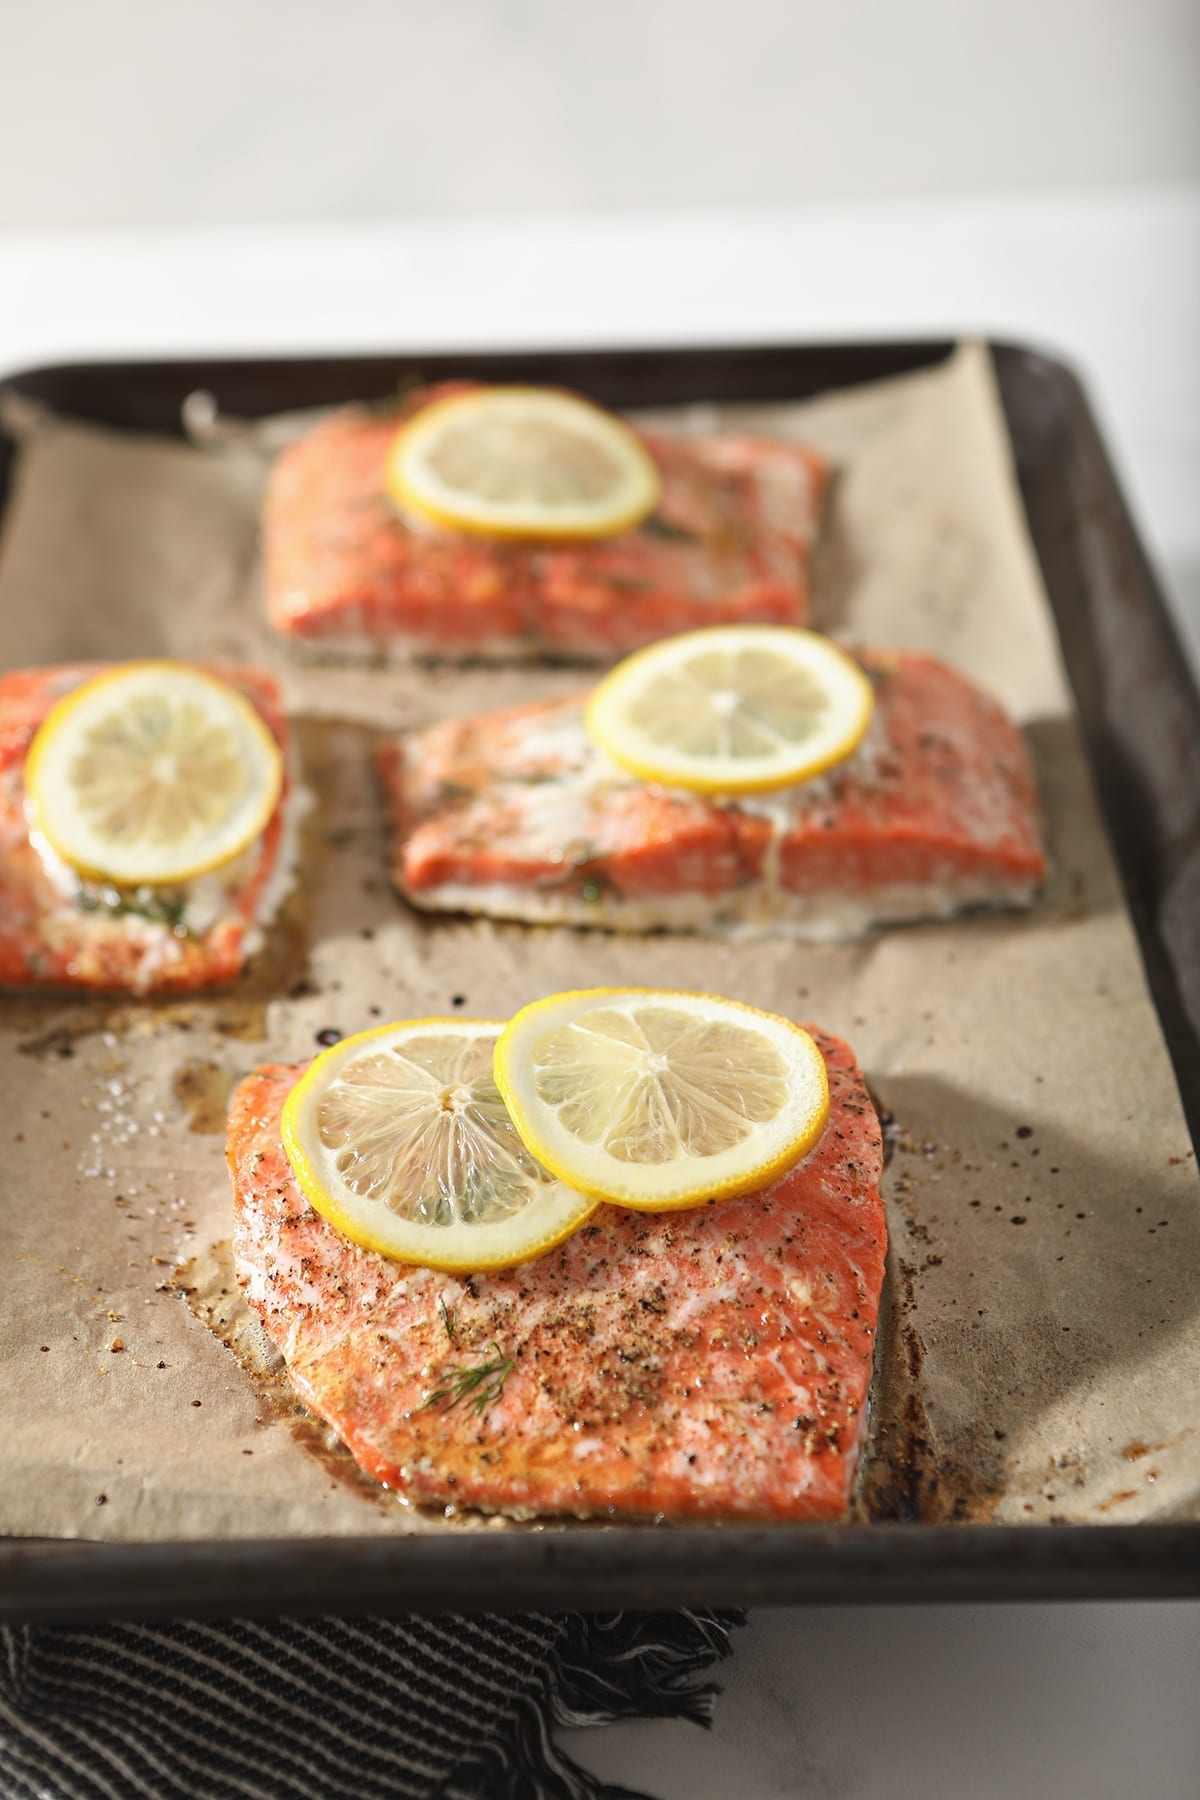 Four salmon filets sit on a baking sheet, garnished with lemon rounds, over a dark grey and white striped towel